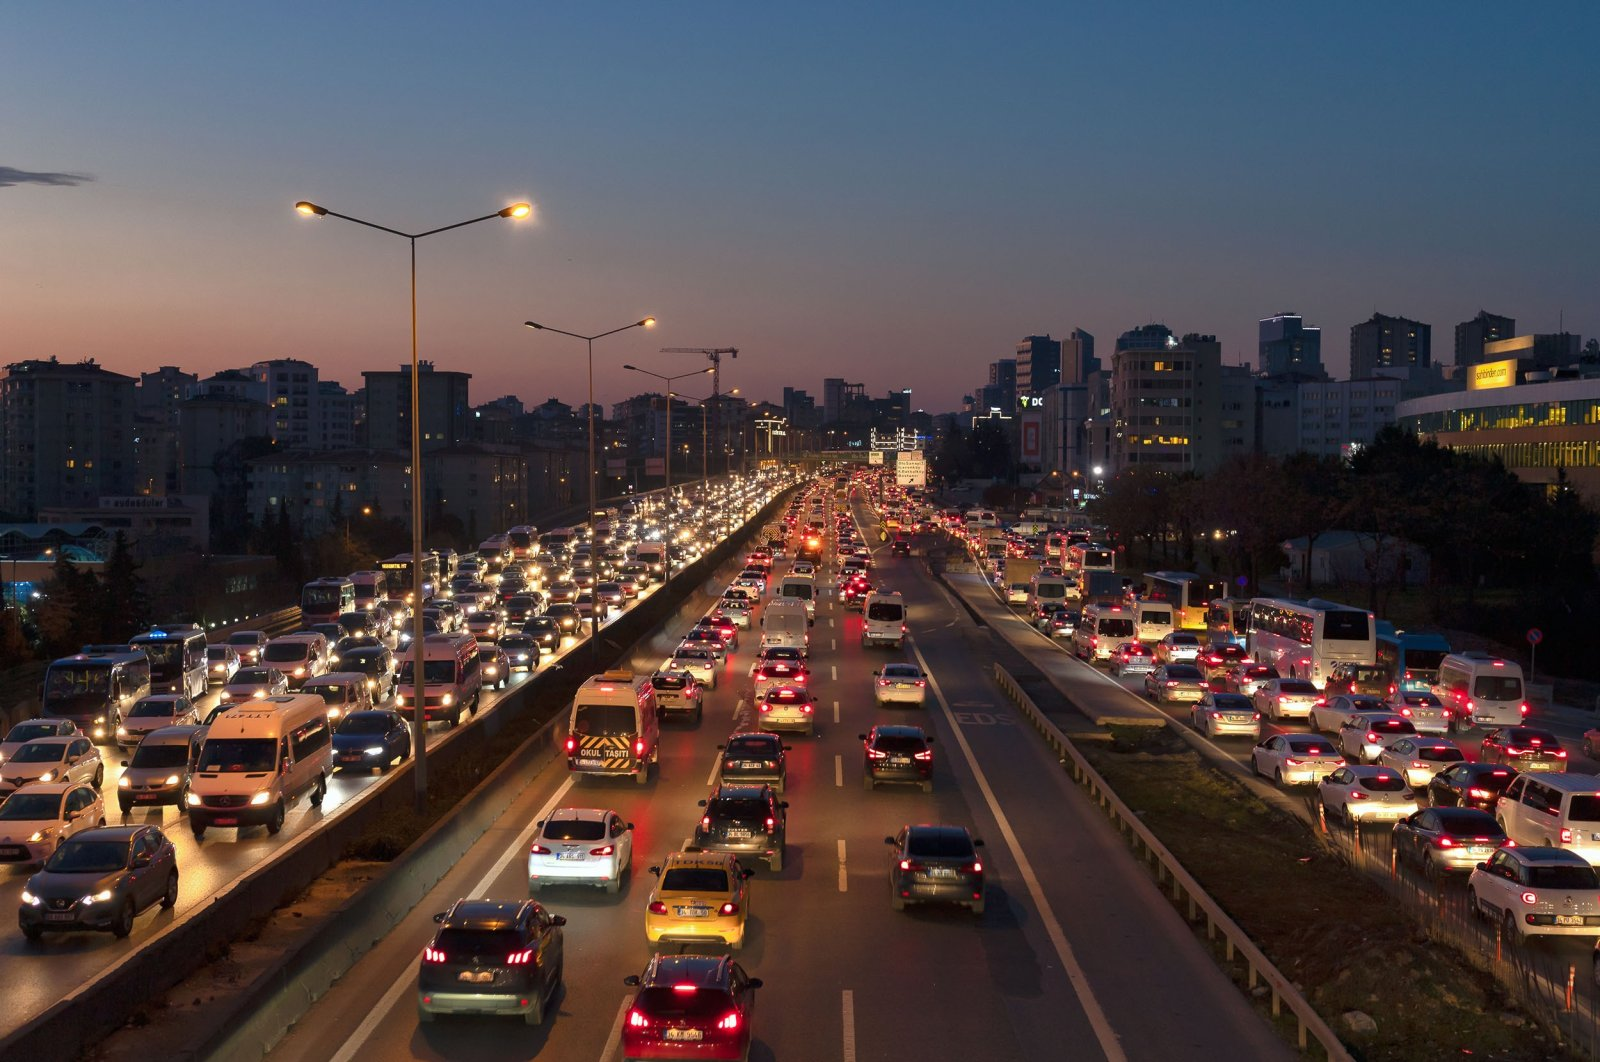 Vehicles crowd the lanes of the D100 highway on Istanbul's Anatolian side, Turkey, March 1, 2019. (Shutterstock Photo)